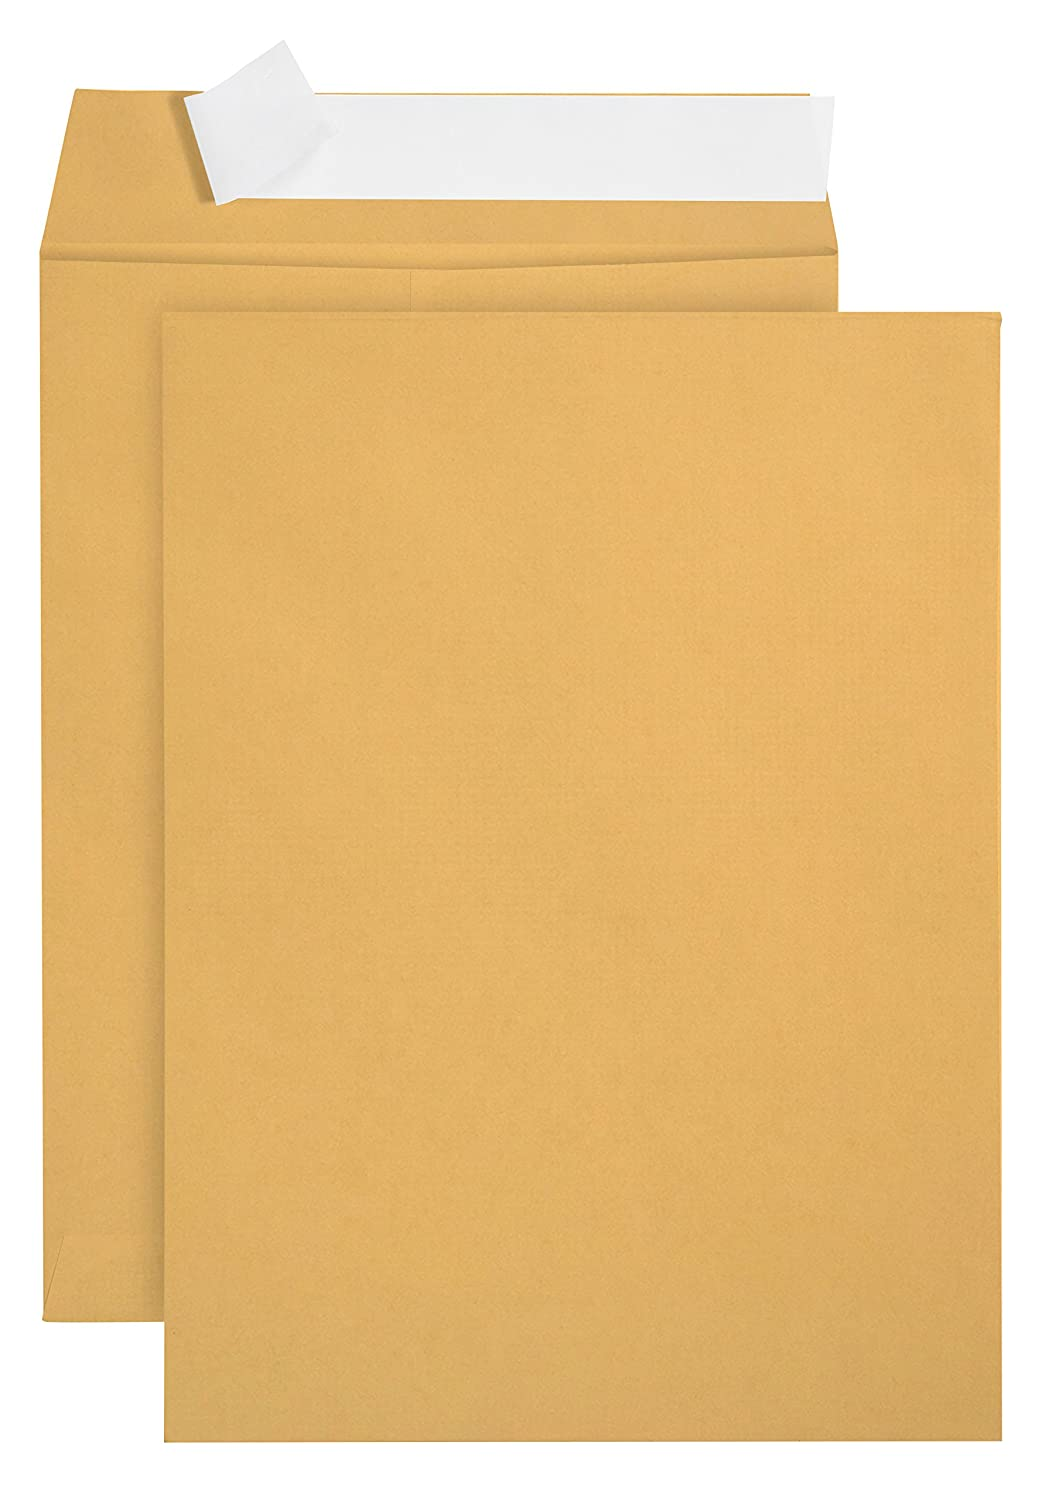 100 6 x 9 SELF Seal Golden Brown Kraft Catalog Envelopes - Oversize 6x9 Envelope Peel and Seal Flap with 28 LB Kraft Paper Envelopes- Printer Friendly Design-100 Count Blue Summit Supplies